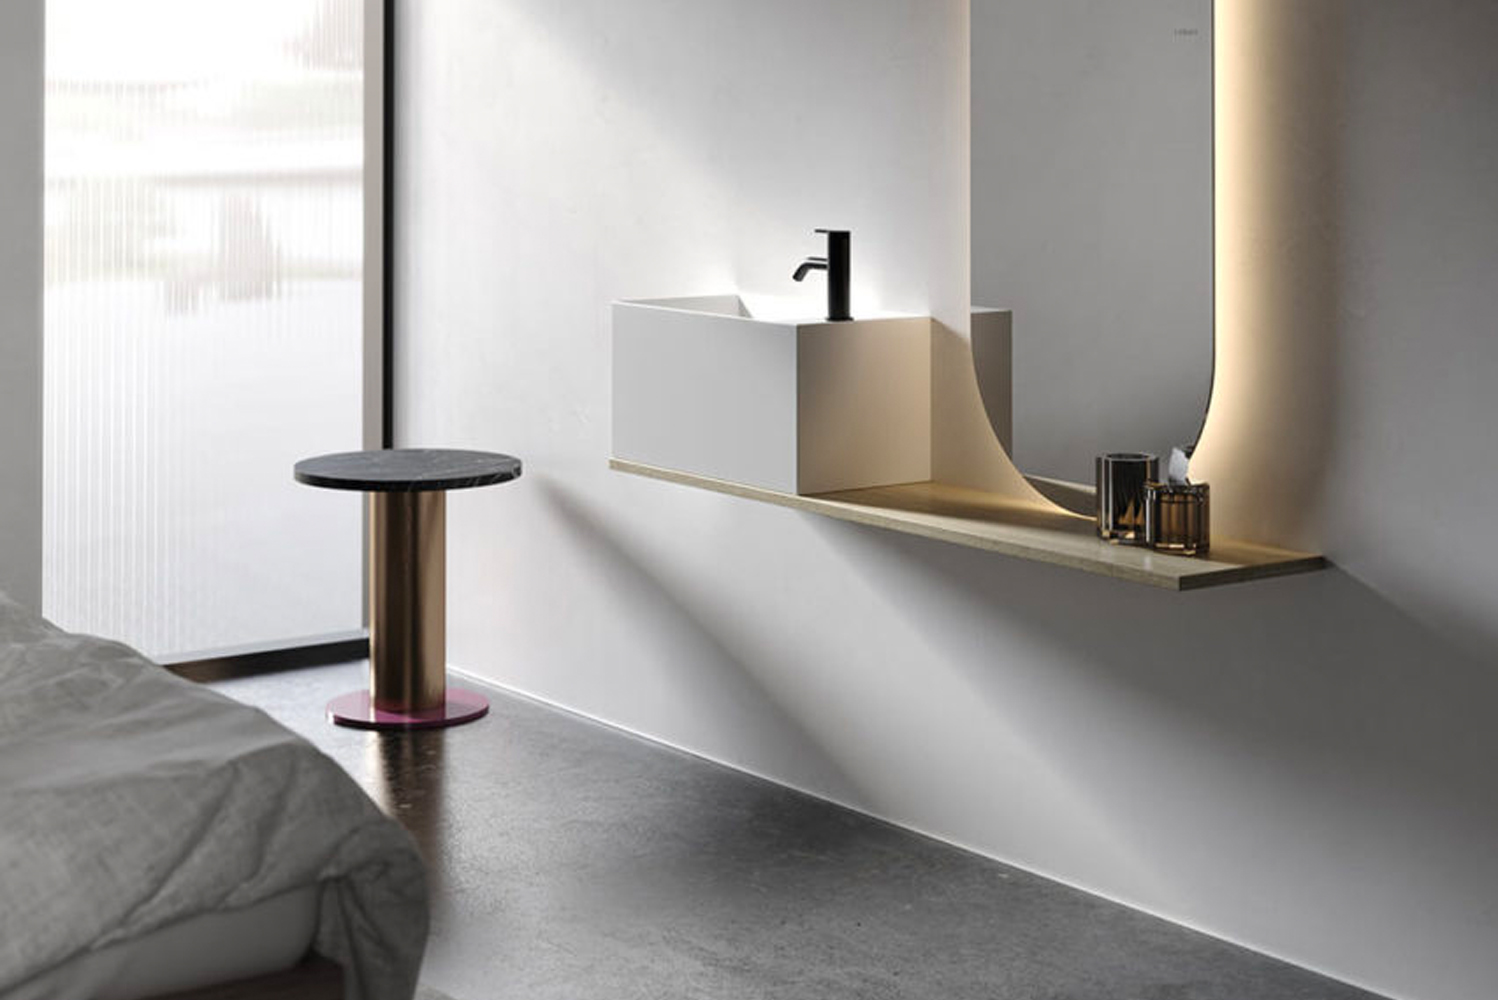 Inbani announced Facett, a washbasin for small spaces.